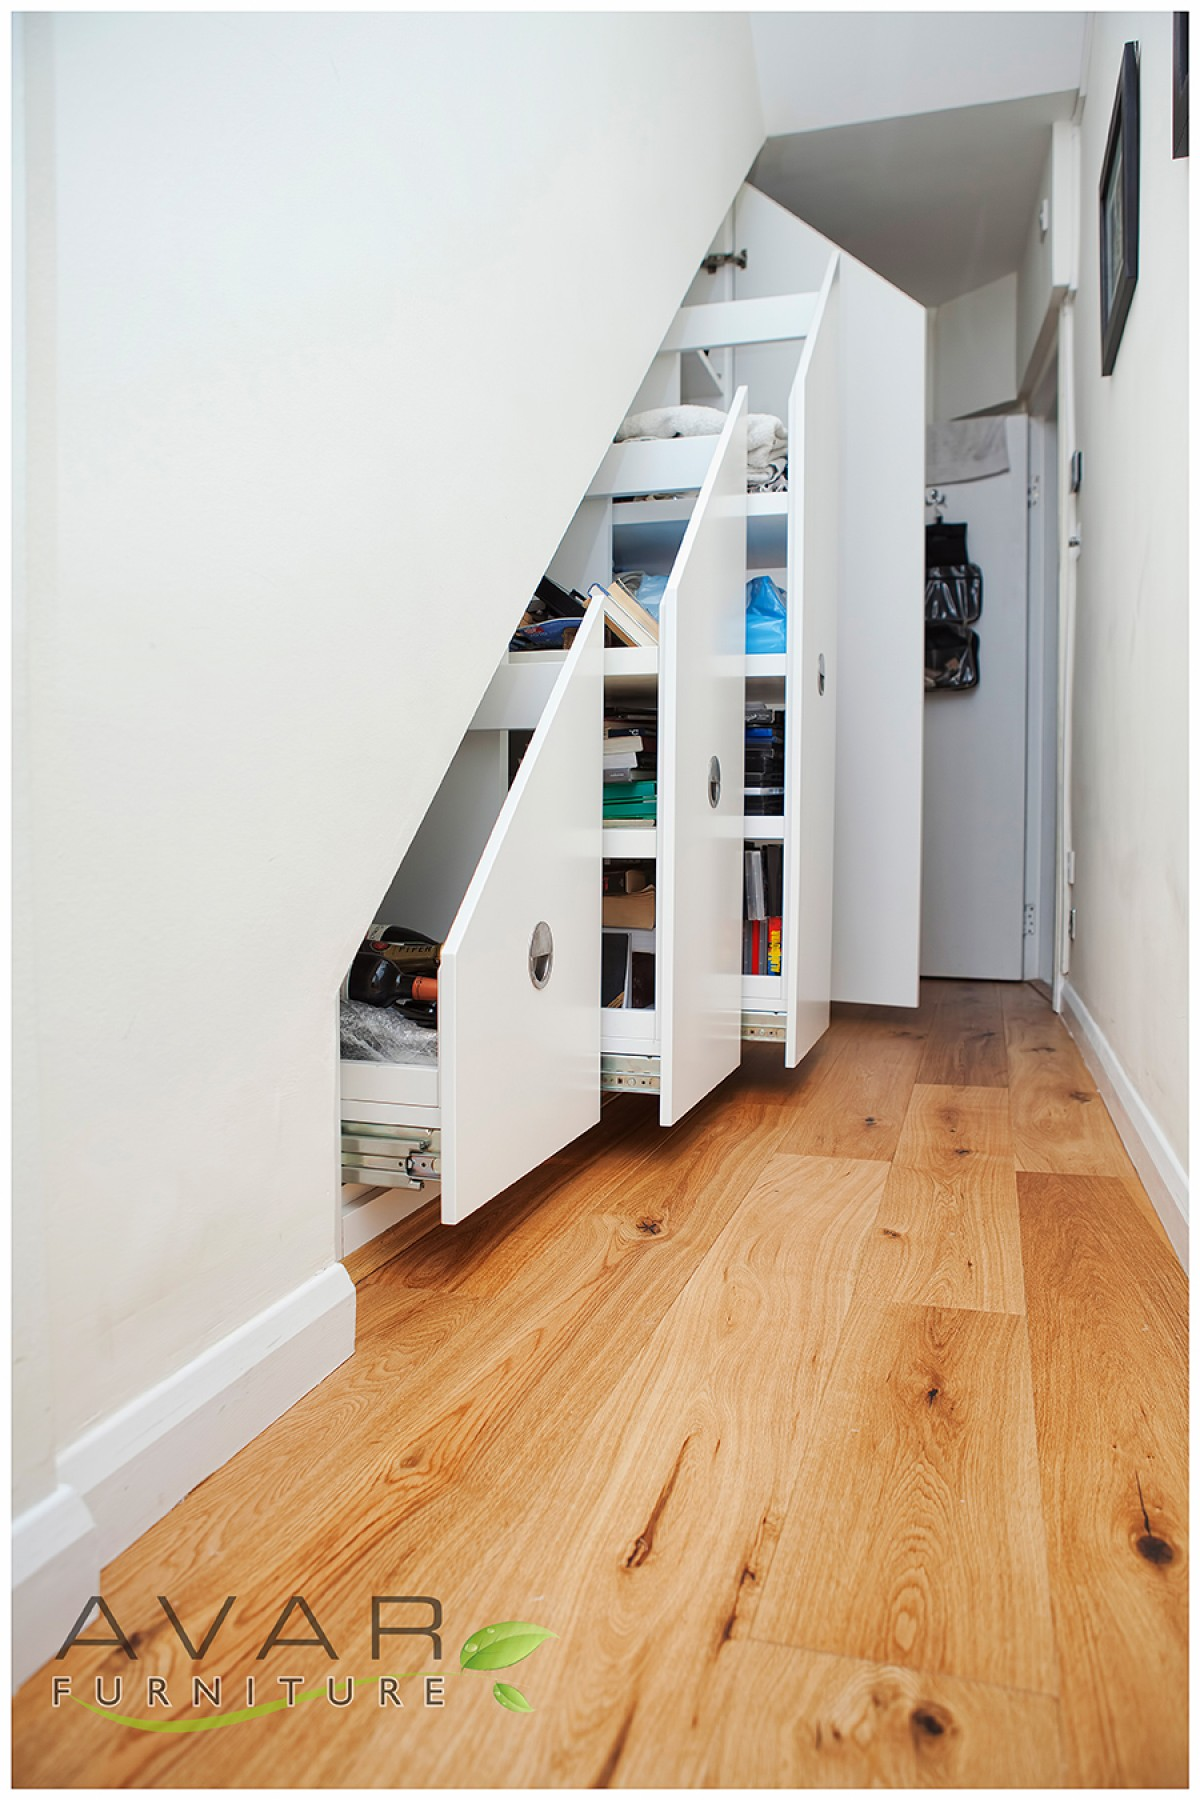 Under stairs storage ideas gallery 11 north london for Understairs storage